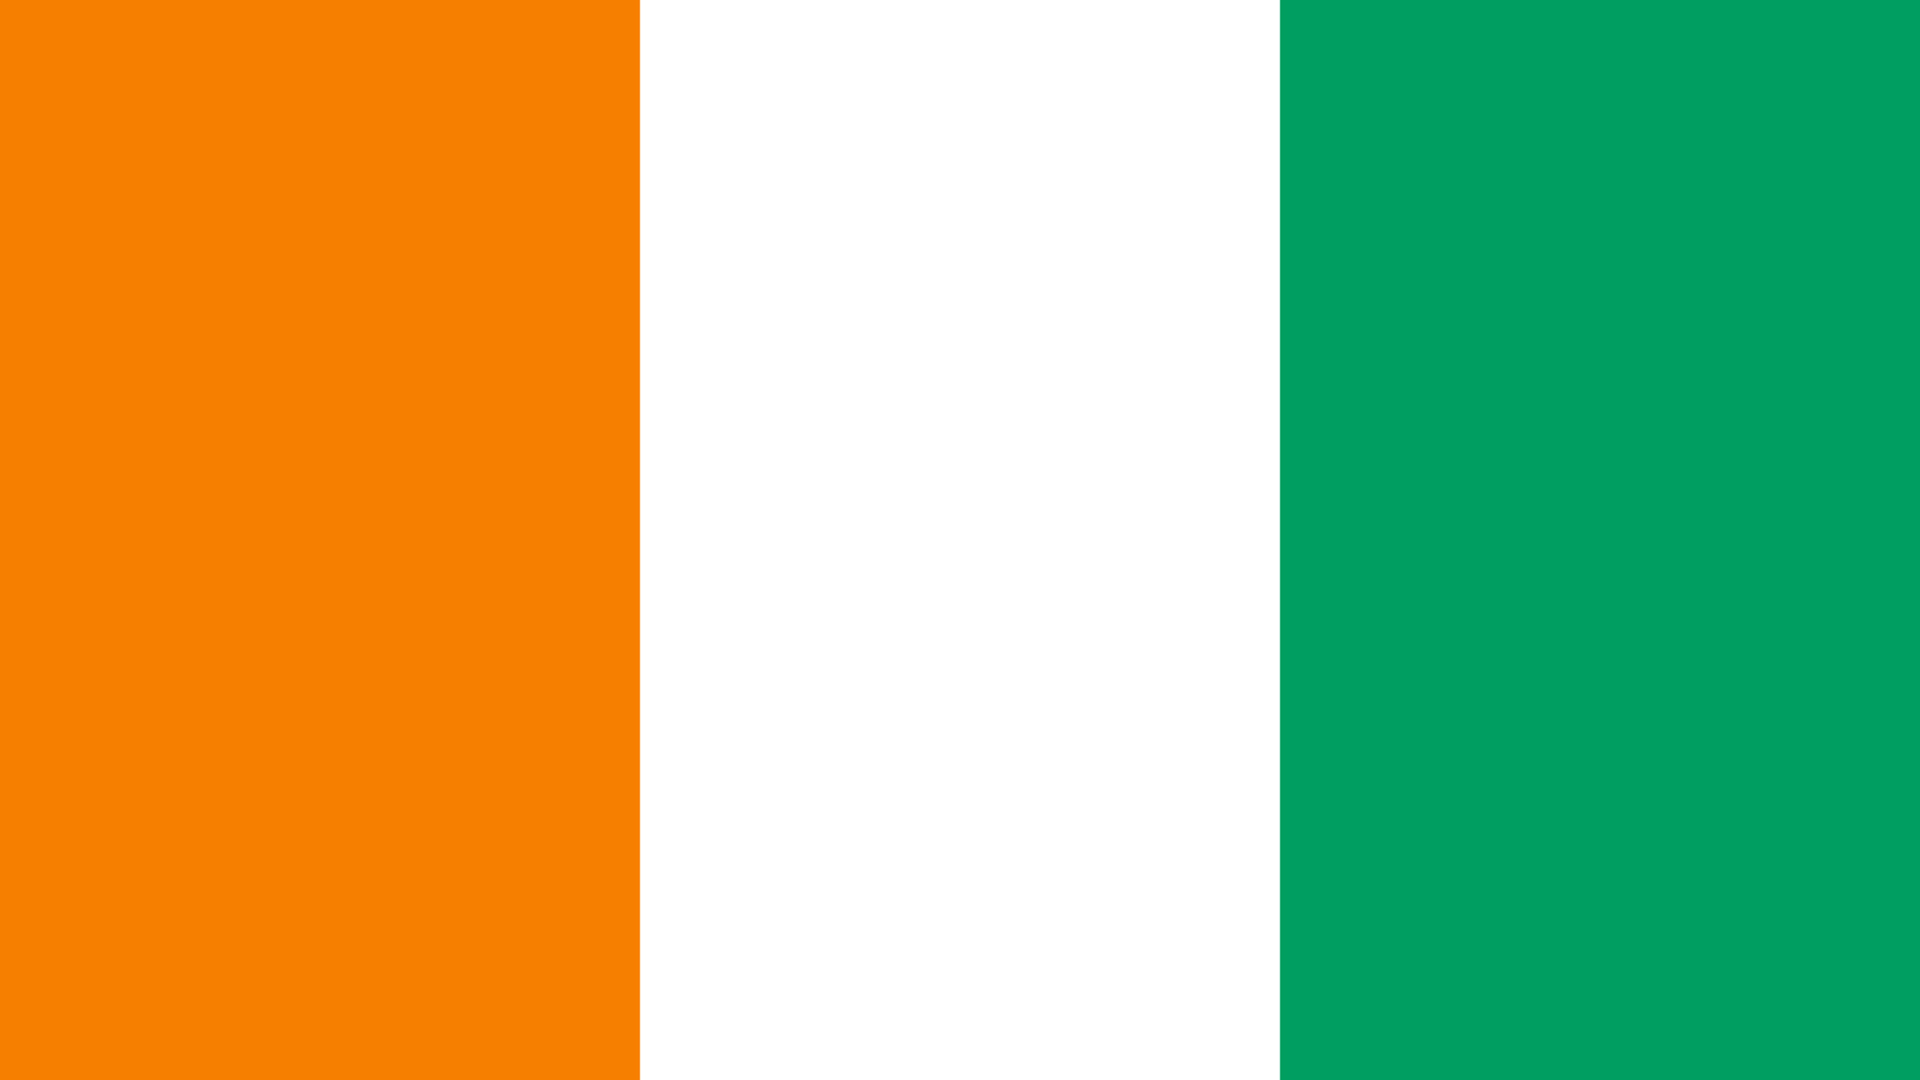 COUNTRY PROFILE: Cote D'ivoire